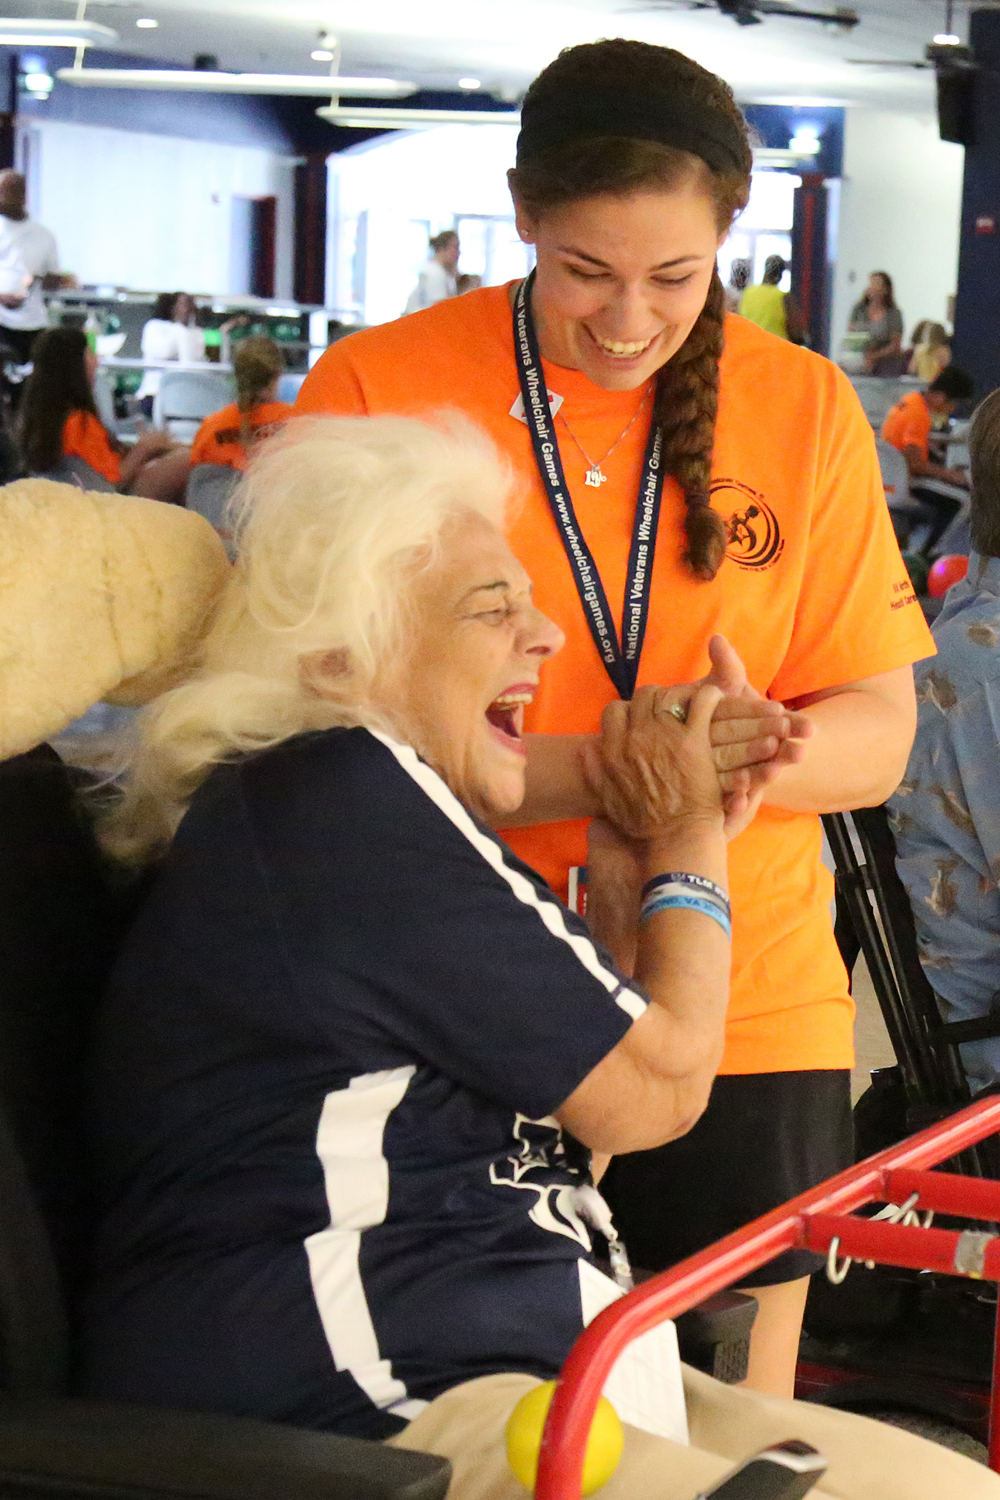 Student volunteer assists Veteran at National Veterans Wheelchair Games